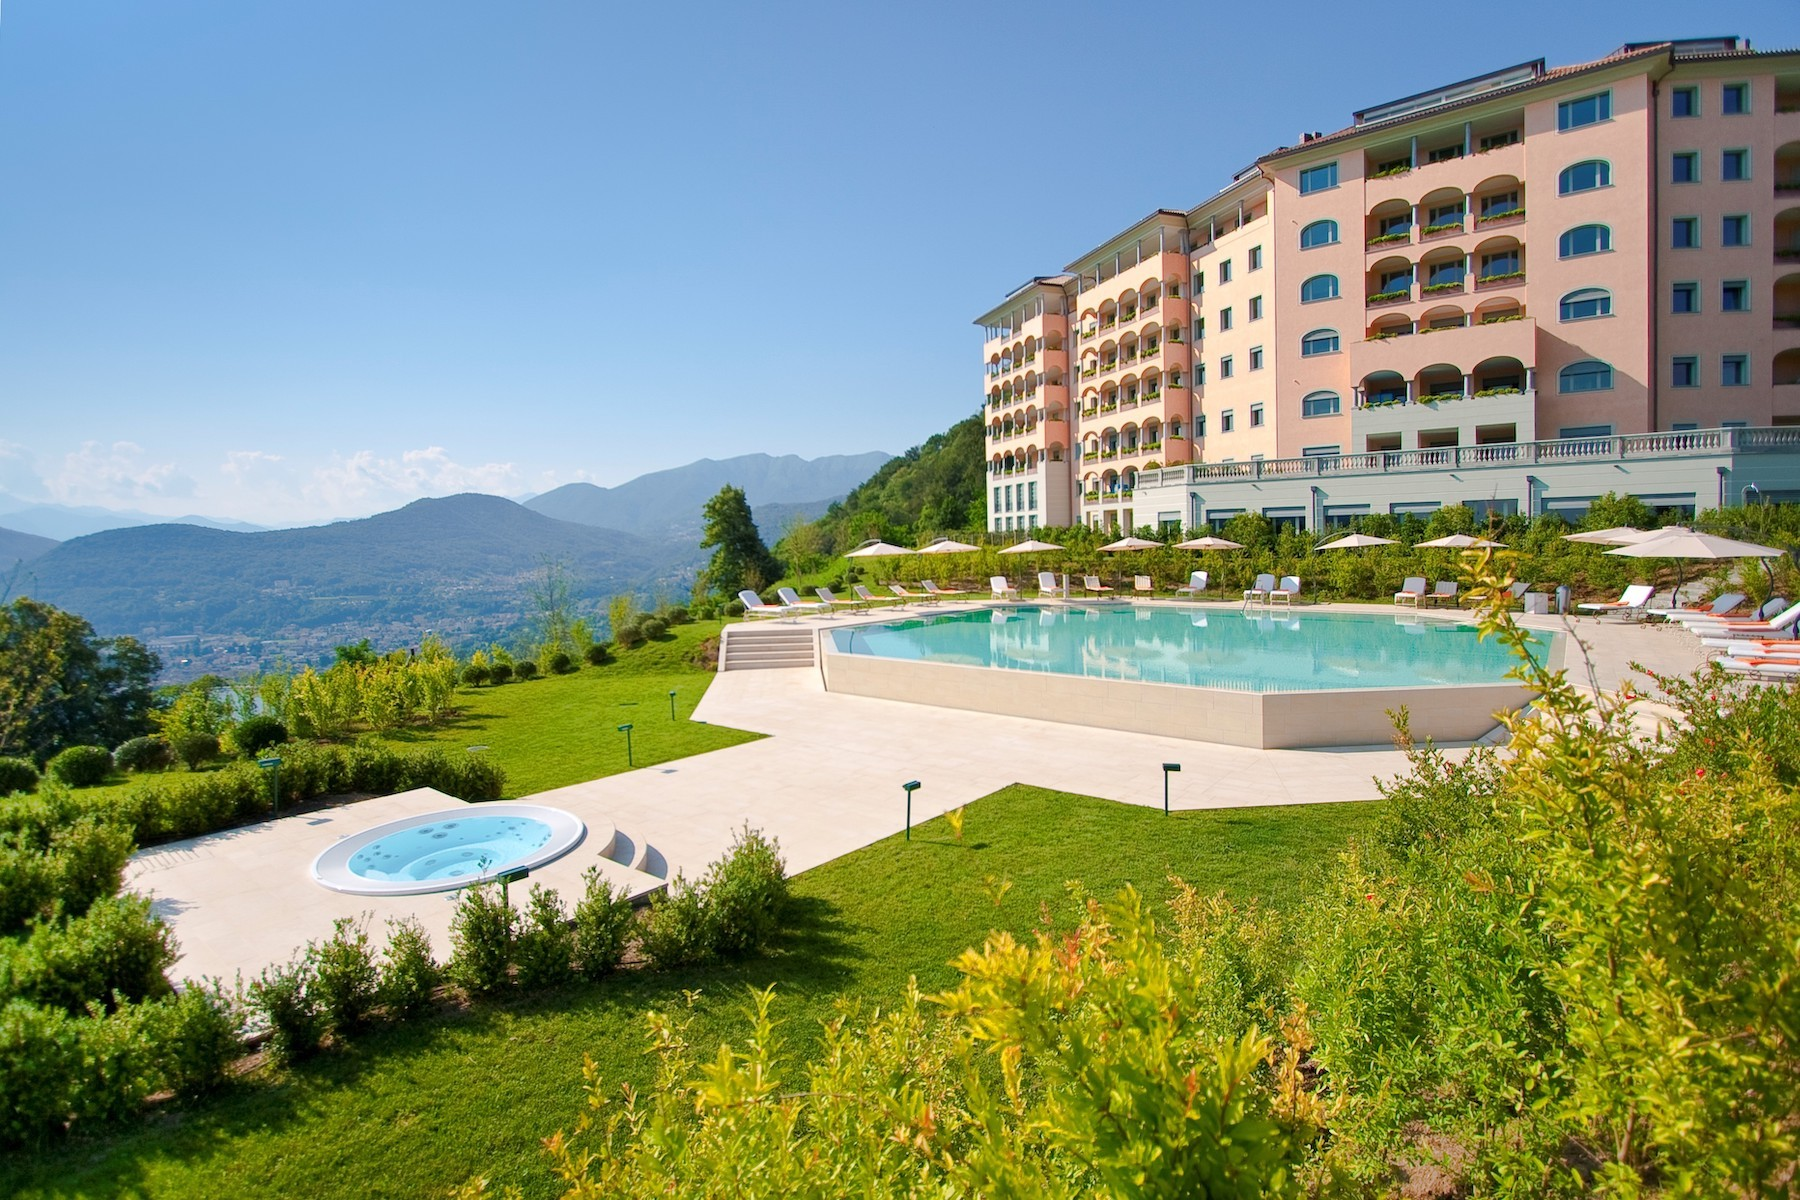 Win two nights in Ticino at a fabulous five-star hotel